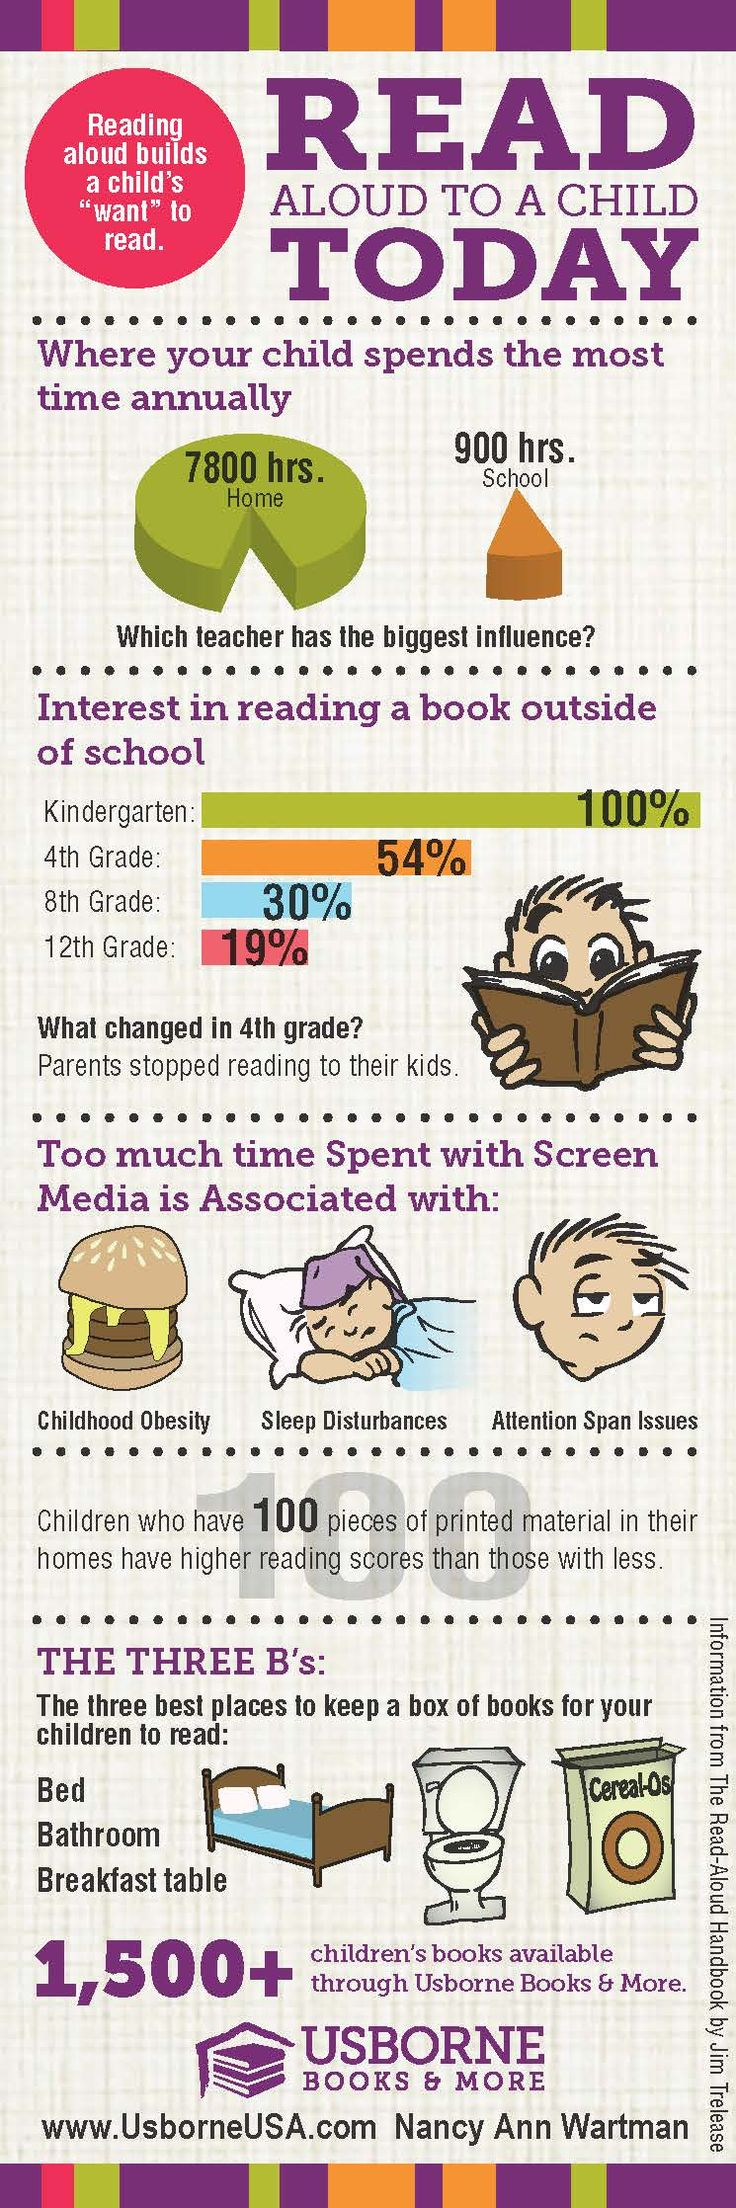 """Raise a Reader Infogram - """"Reading aloud builds a child's 'want' to read."""""""